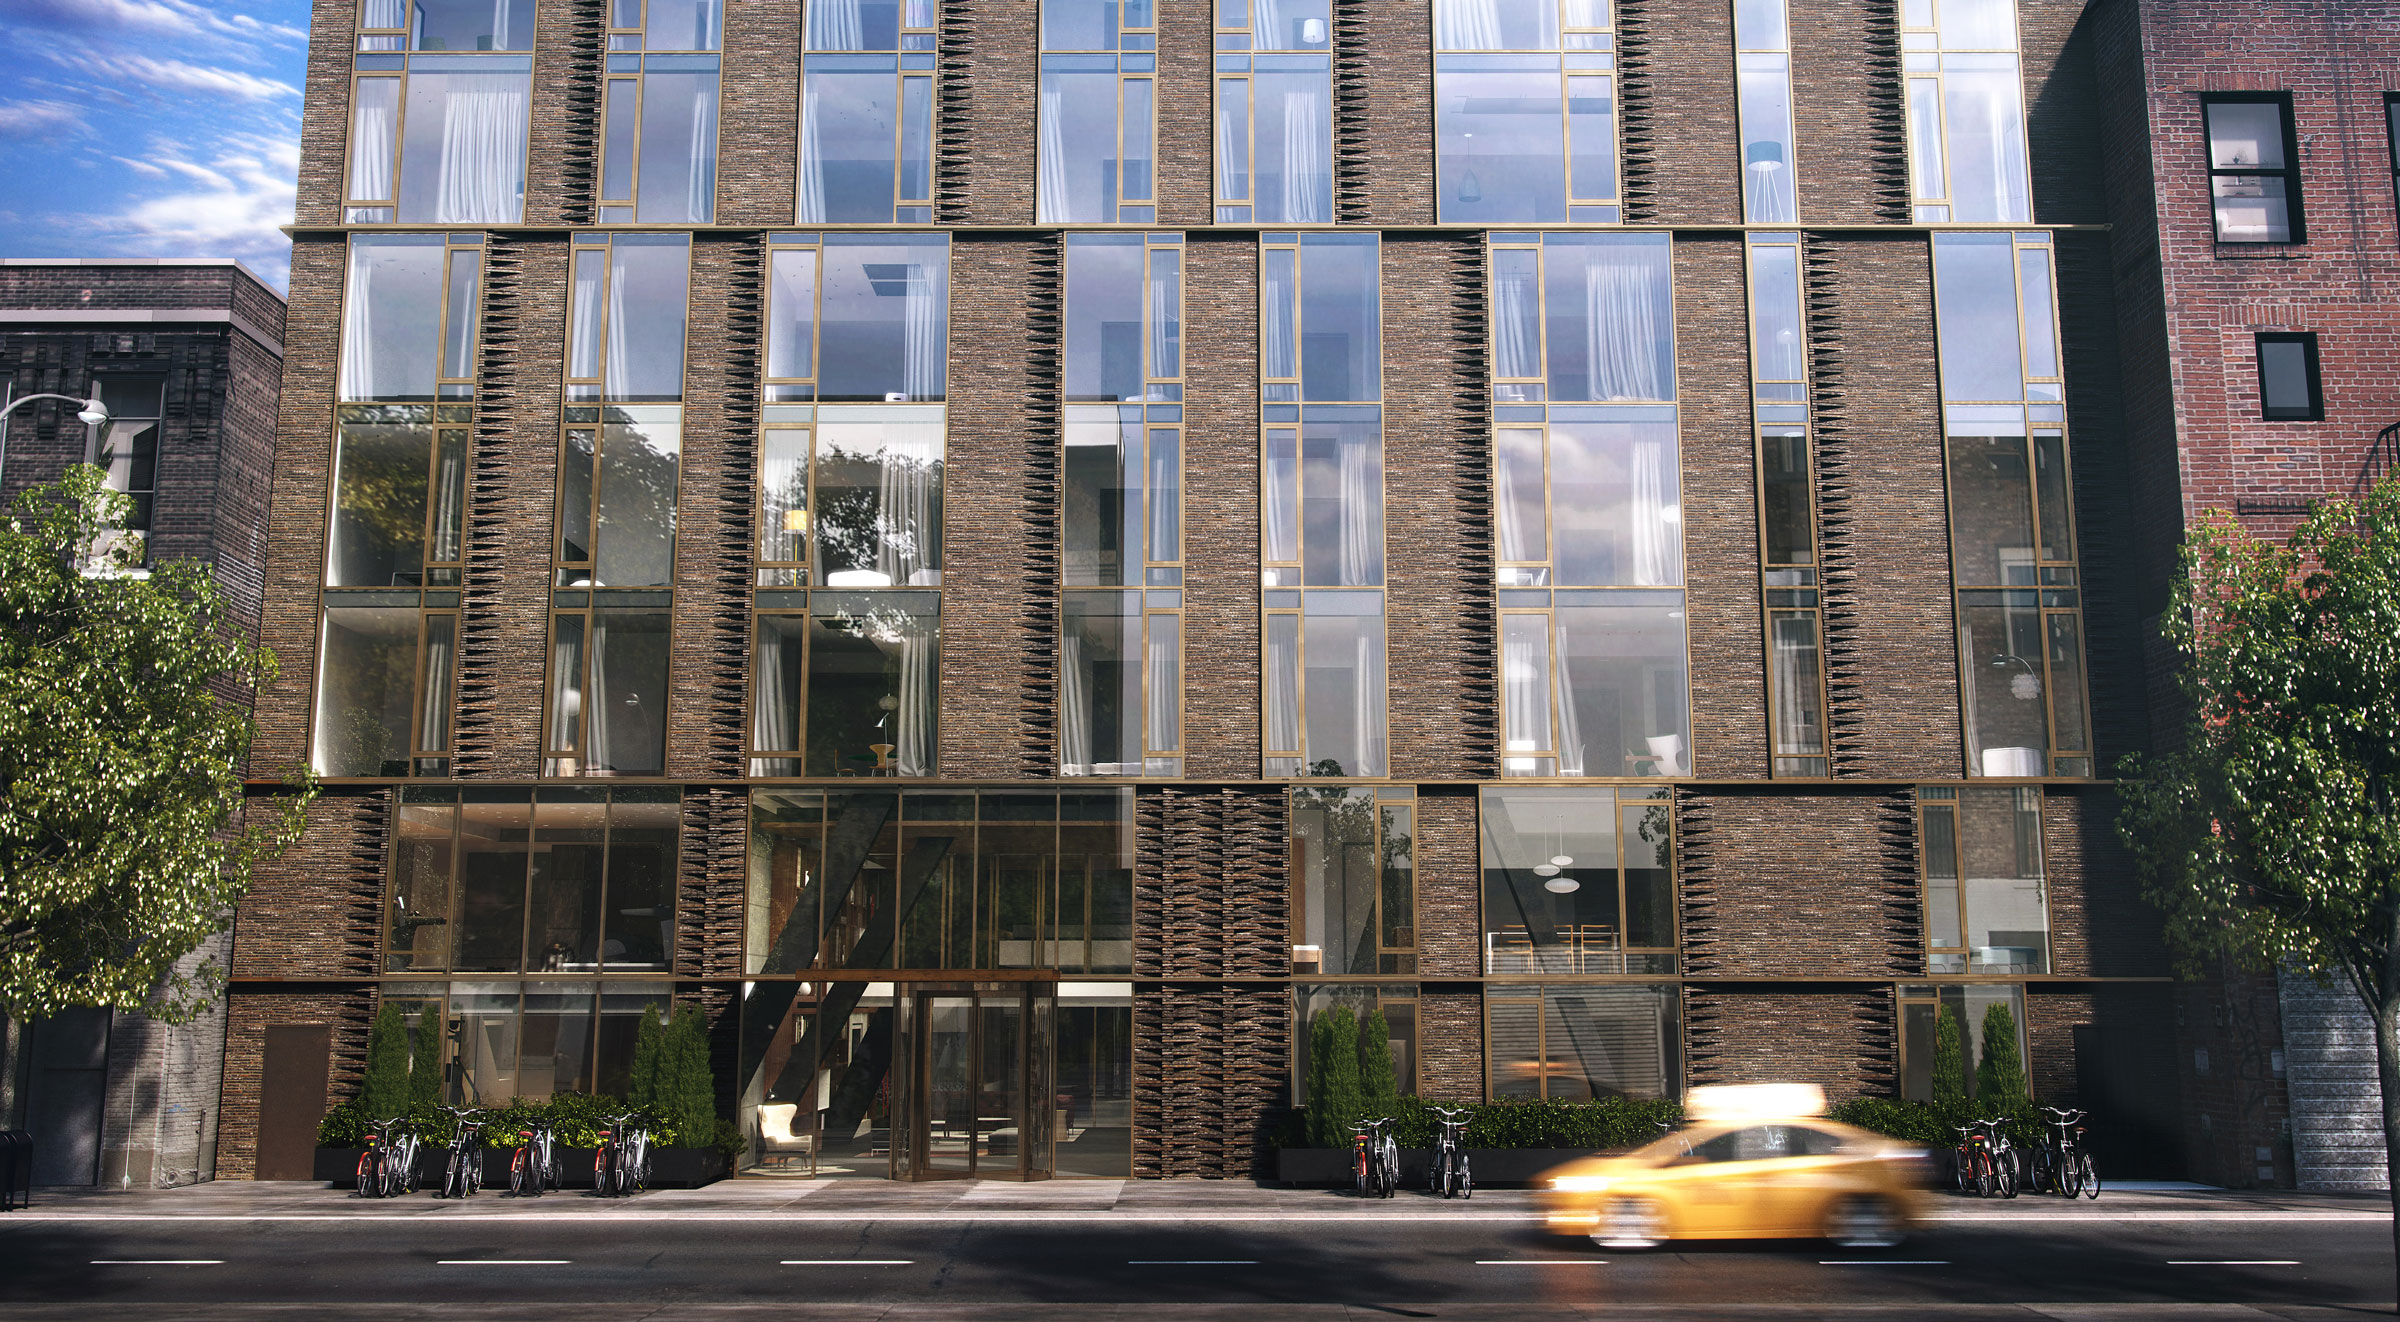 Architectural Rendering of the exterior of the Charlie West 505 West 43rd Street project located in Hell's Kitchen, New York City